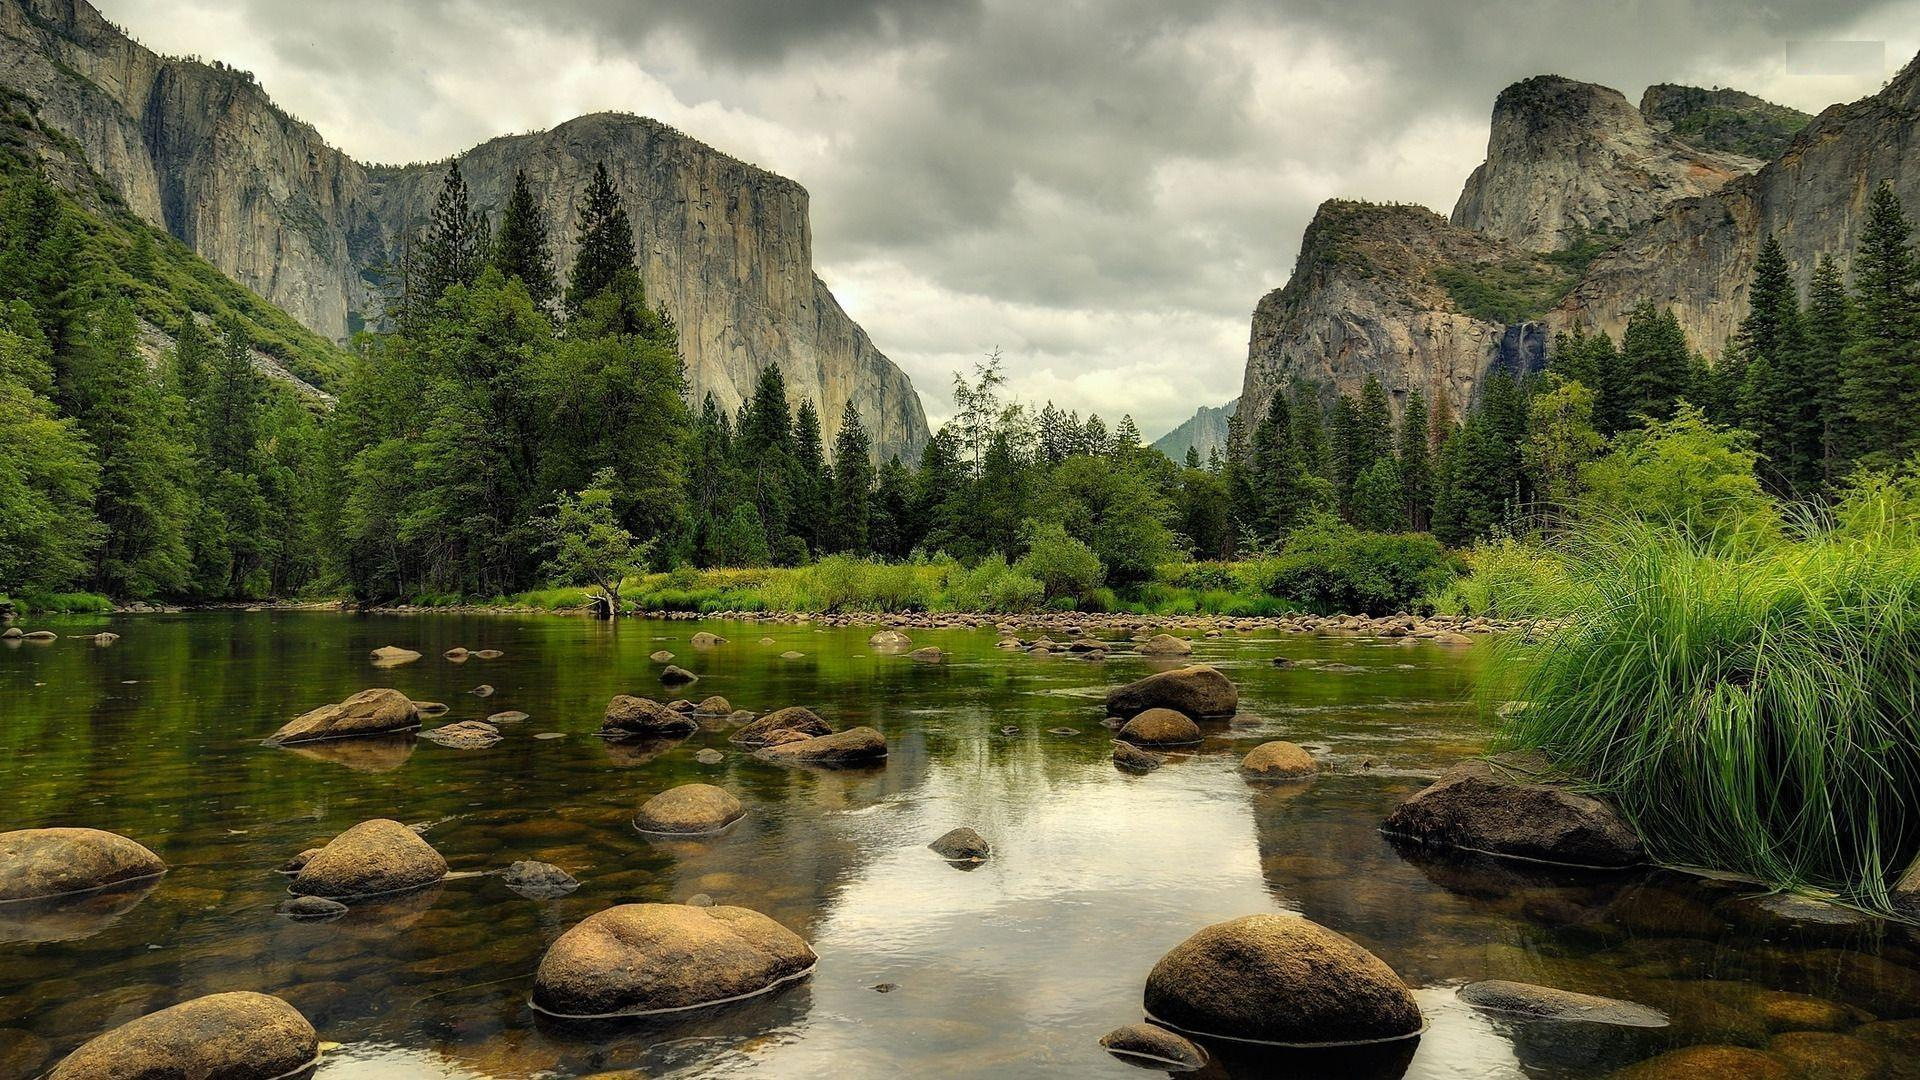 Download Yosemite National Park Wallpapers HD Gallery